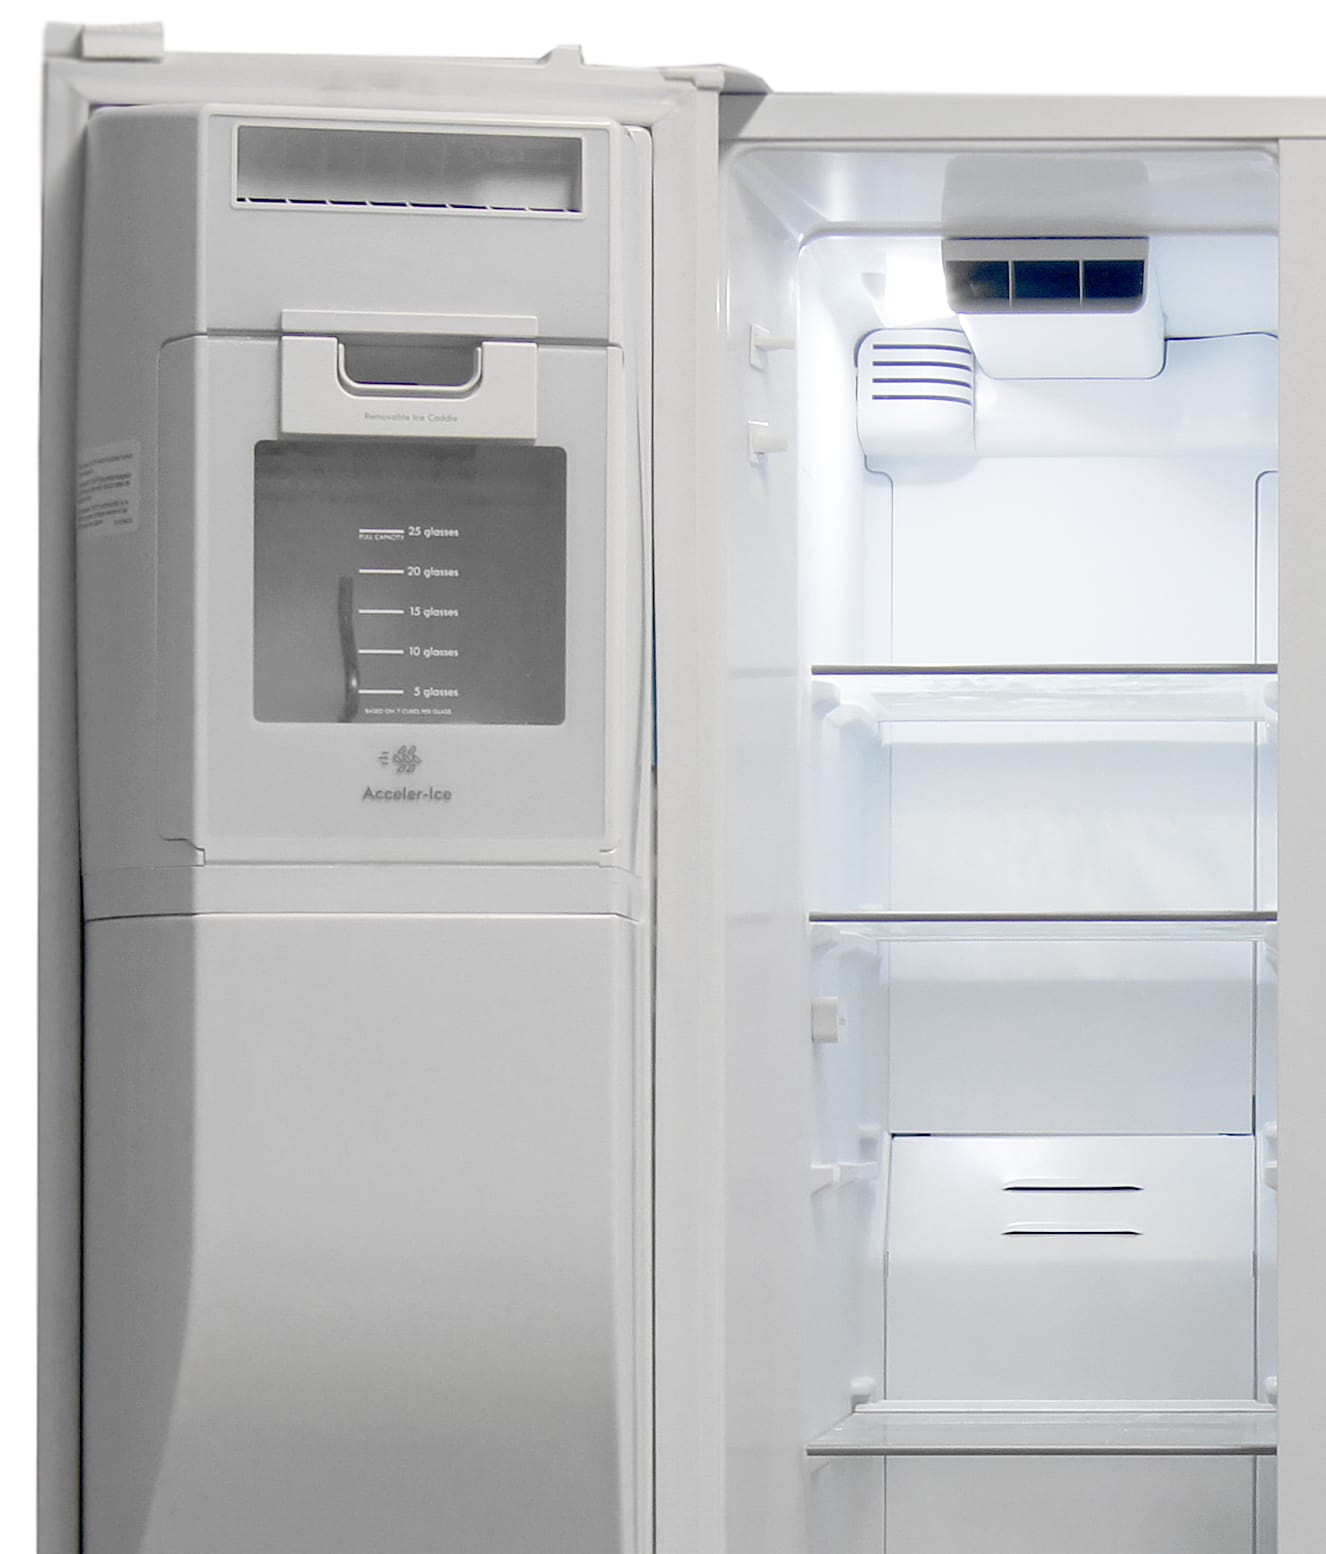 Most of the Kenmore Elite 51162's freezer door is taken up by the icemaker, but the main compartment offers plenty of shelves for storage.